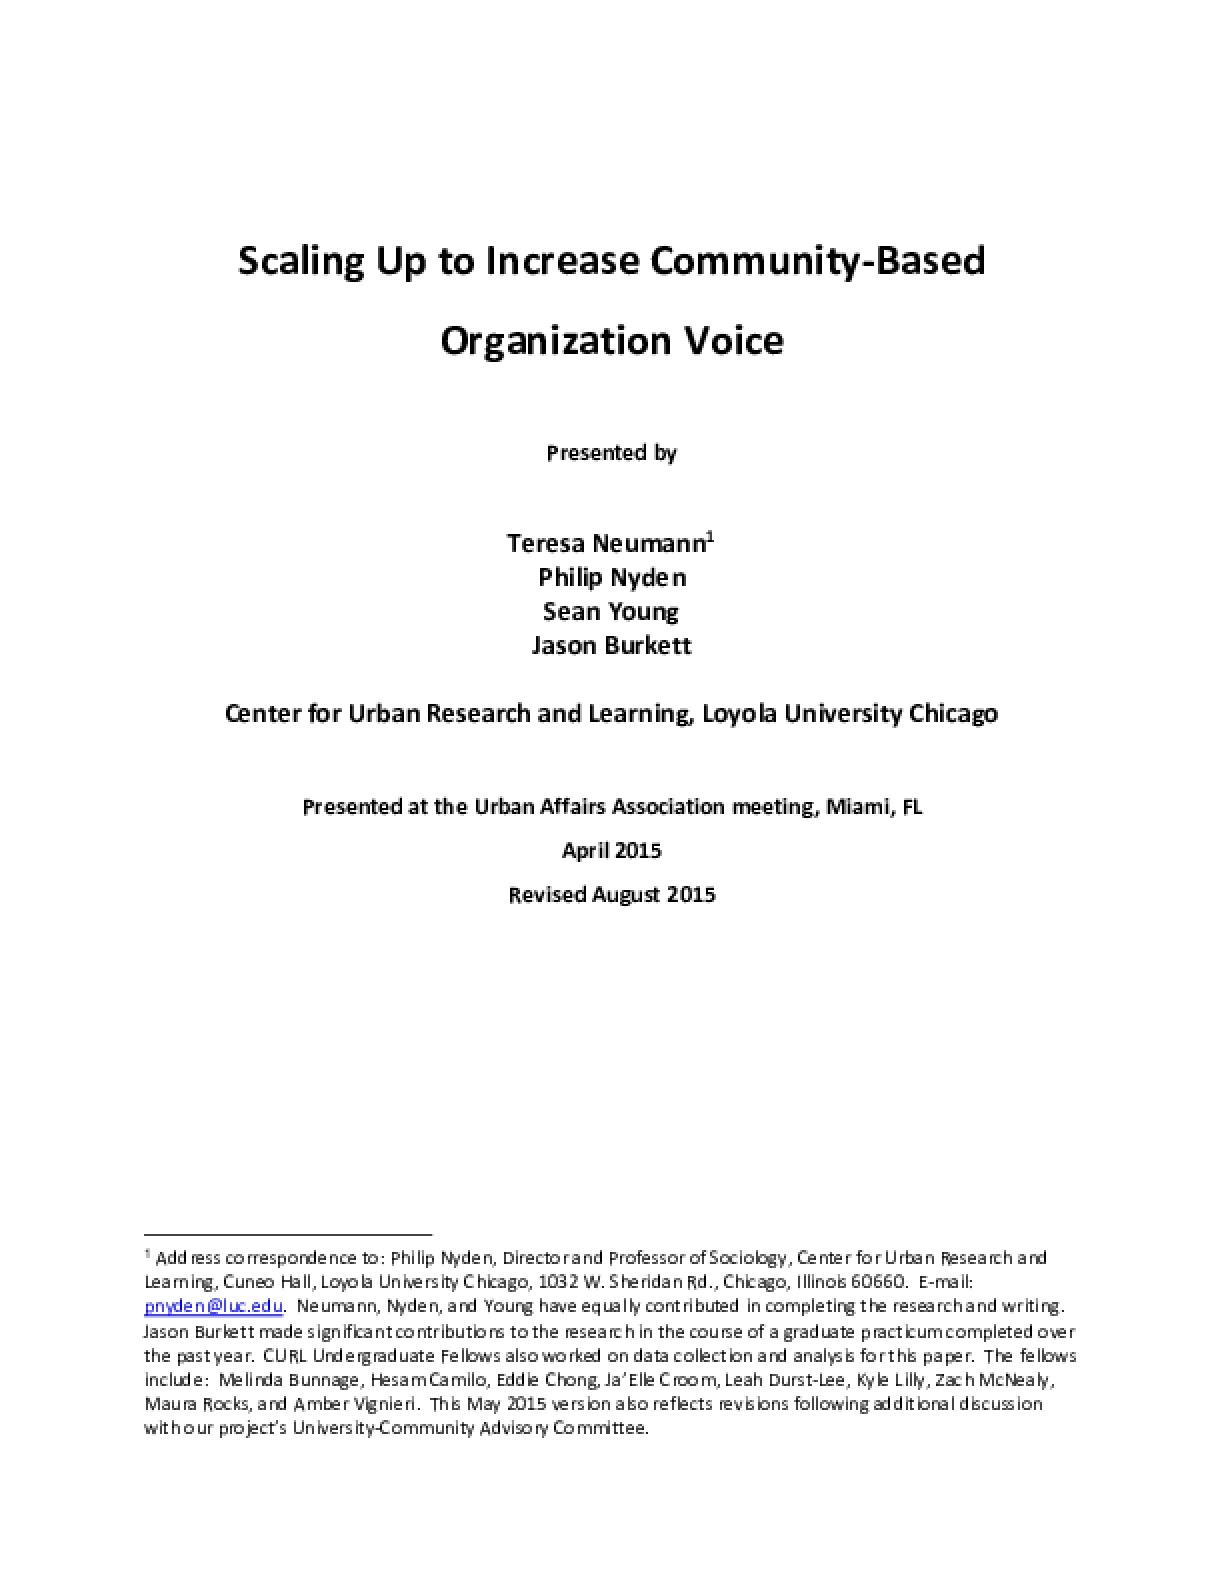 Scaling Up to Increase Community-Based Organization Voice